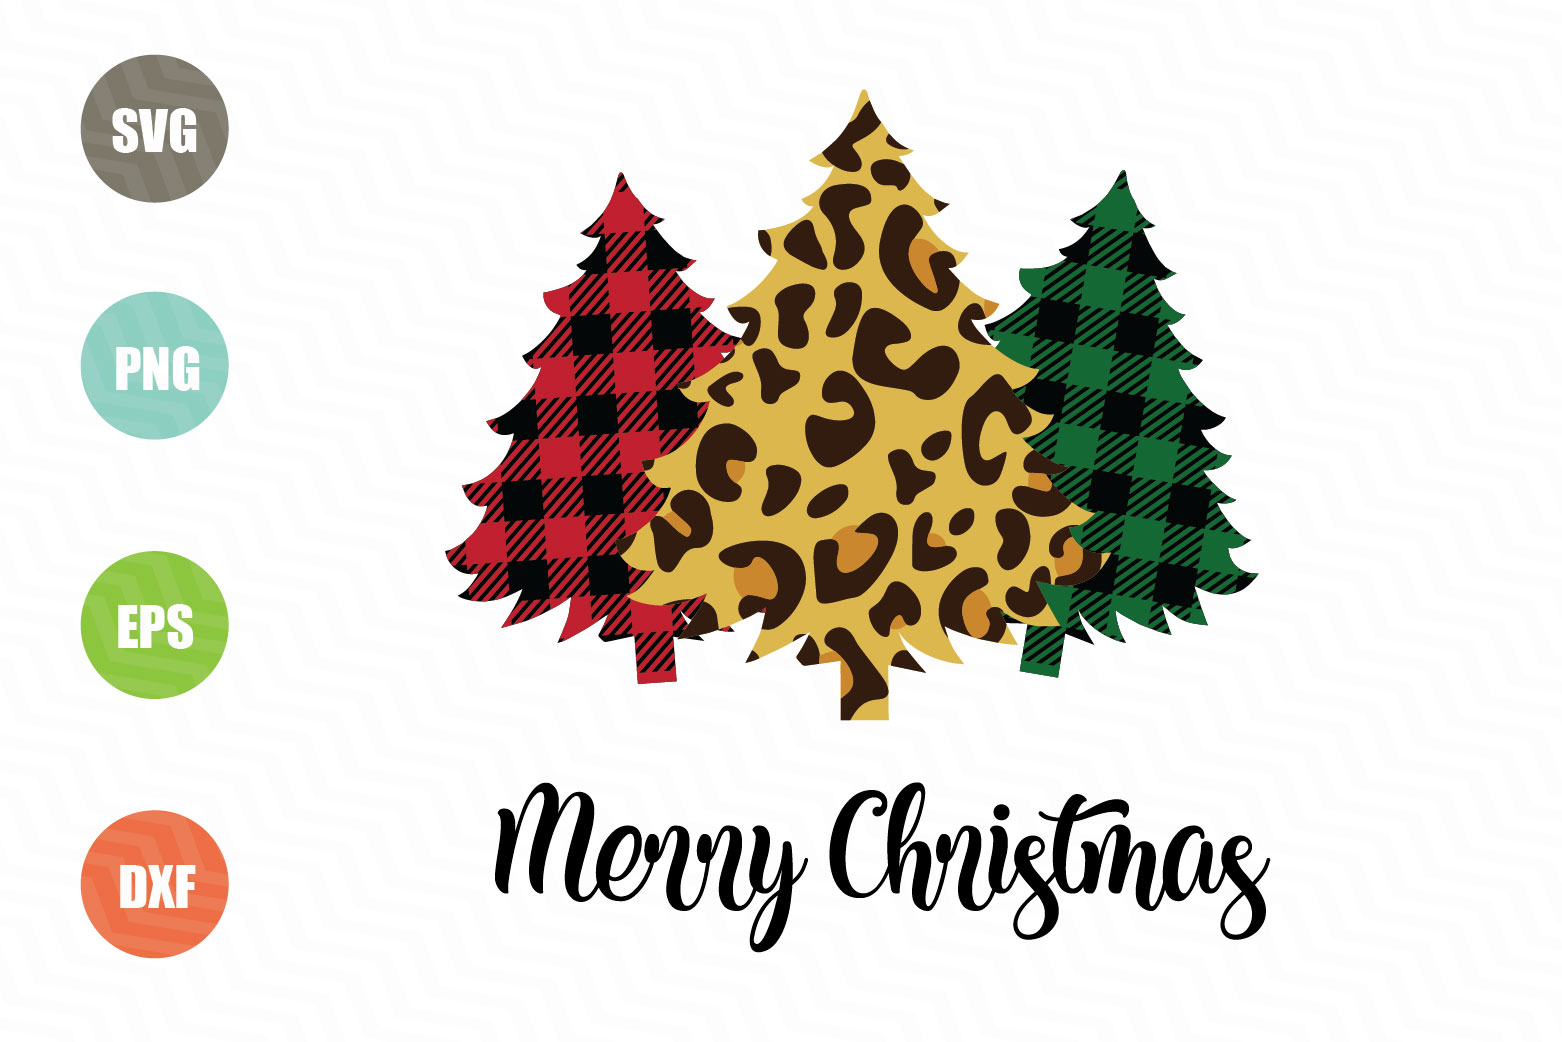 Download Free Merry Christmas Christmas Trees Graphic By Logotrain034 for Cricut Explore, Silhouette and other cutting machines.